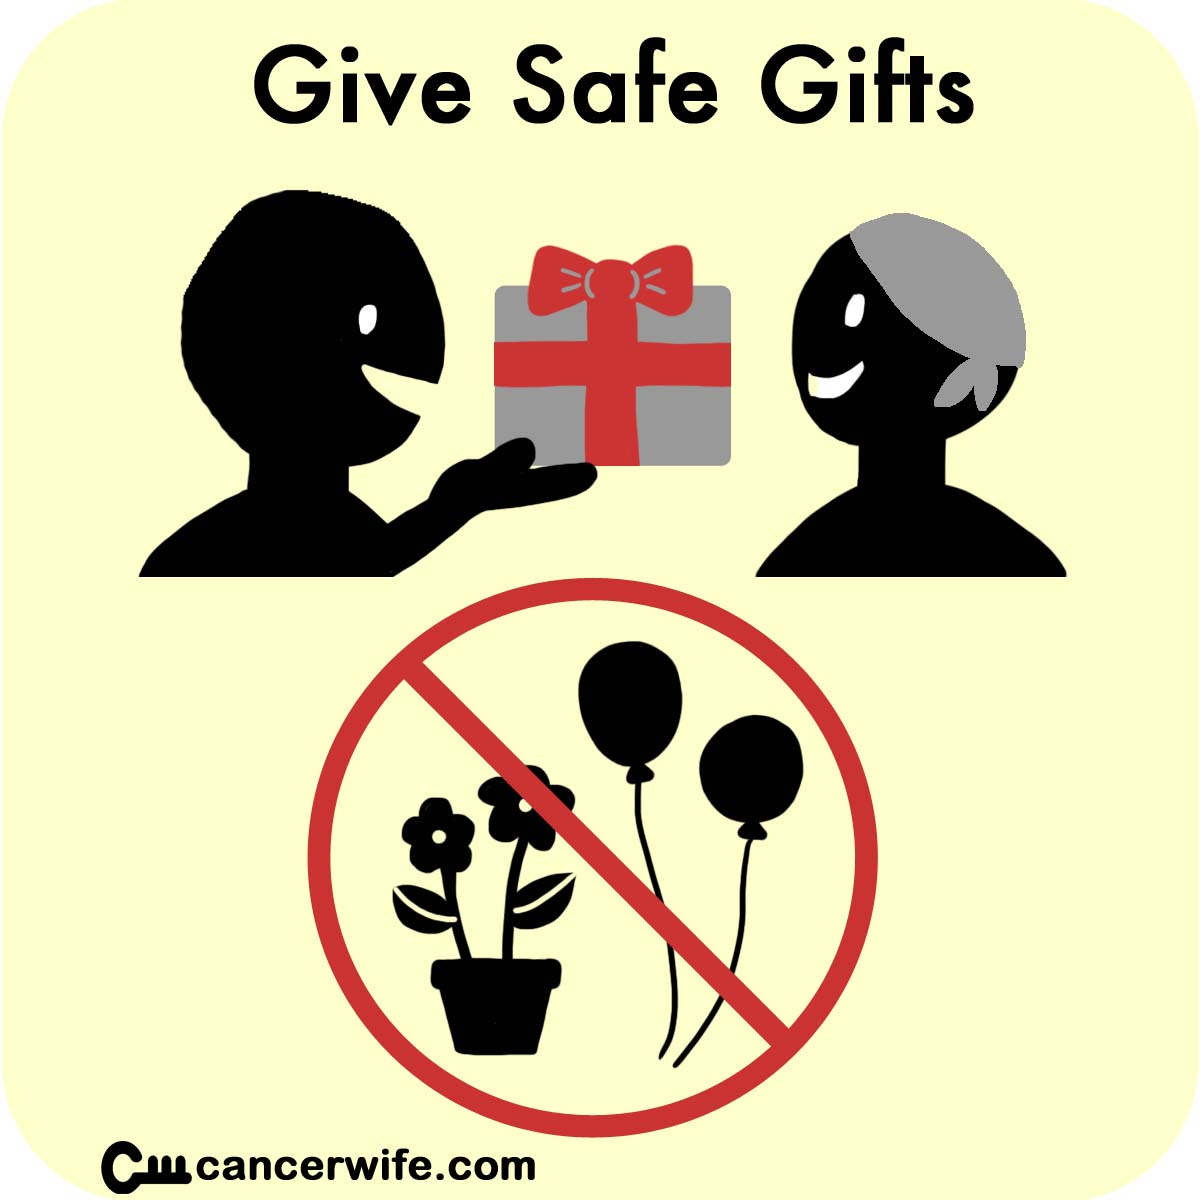 Tips for visiting cancer patients, give safe gifts, no fresh flowers or balloons